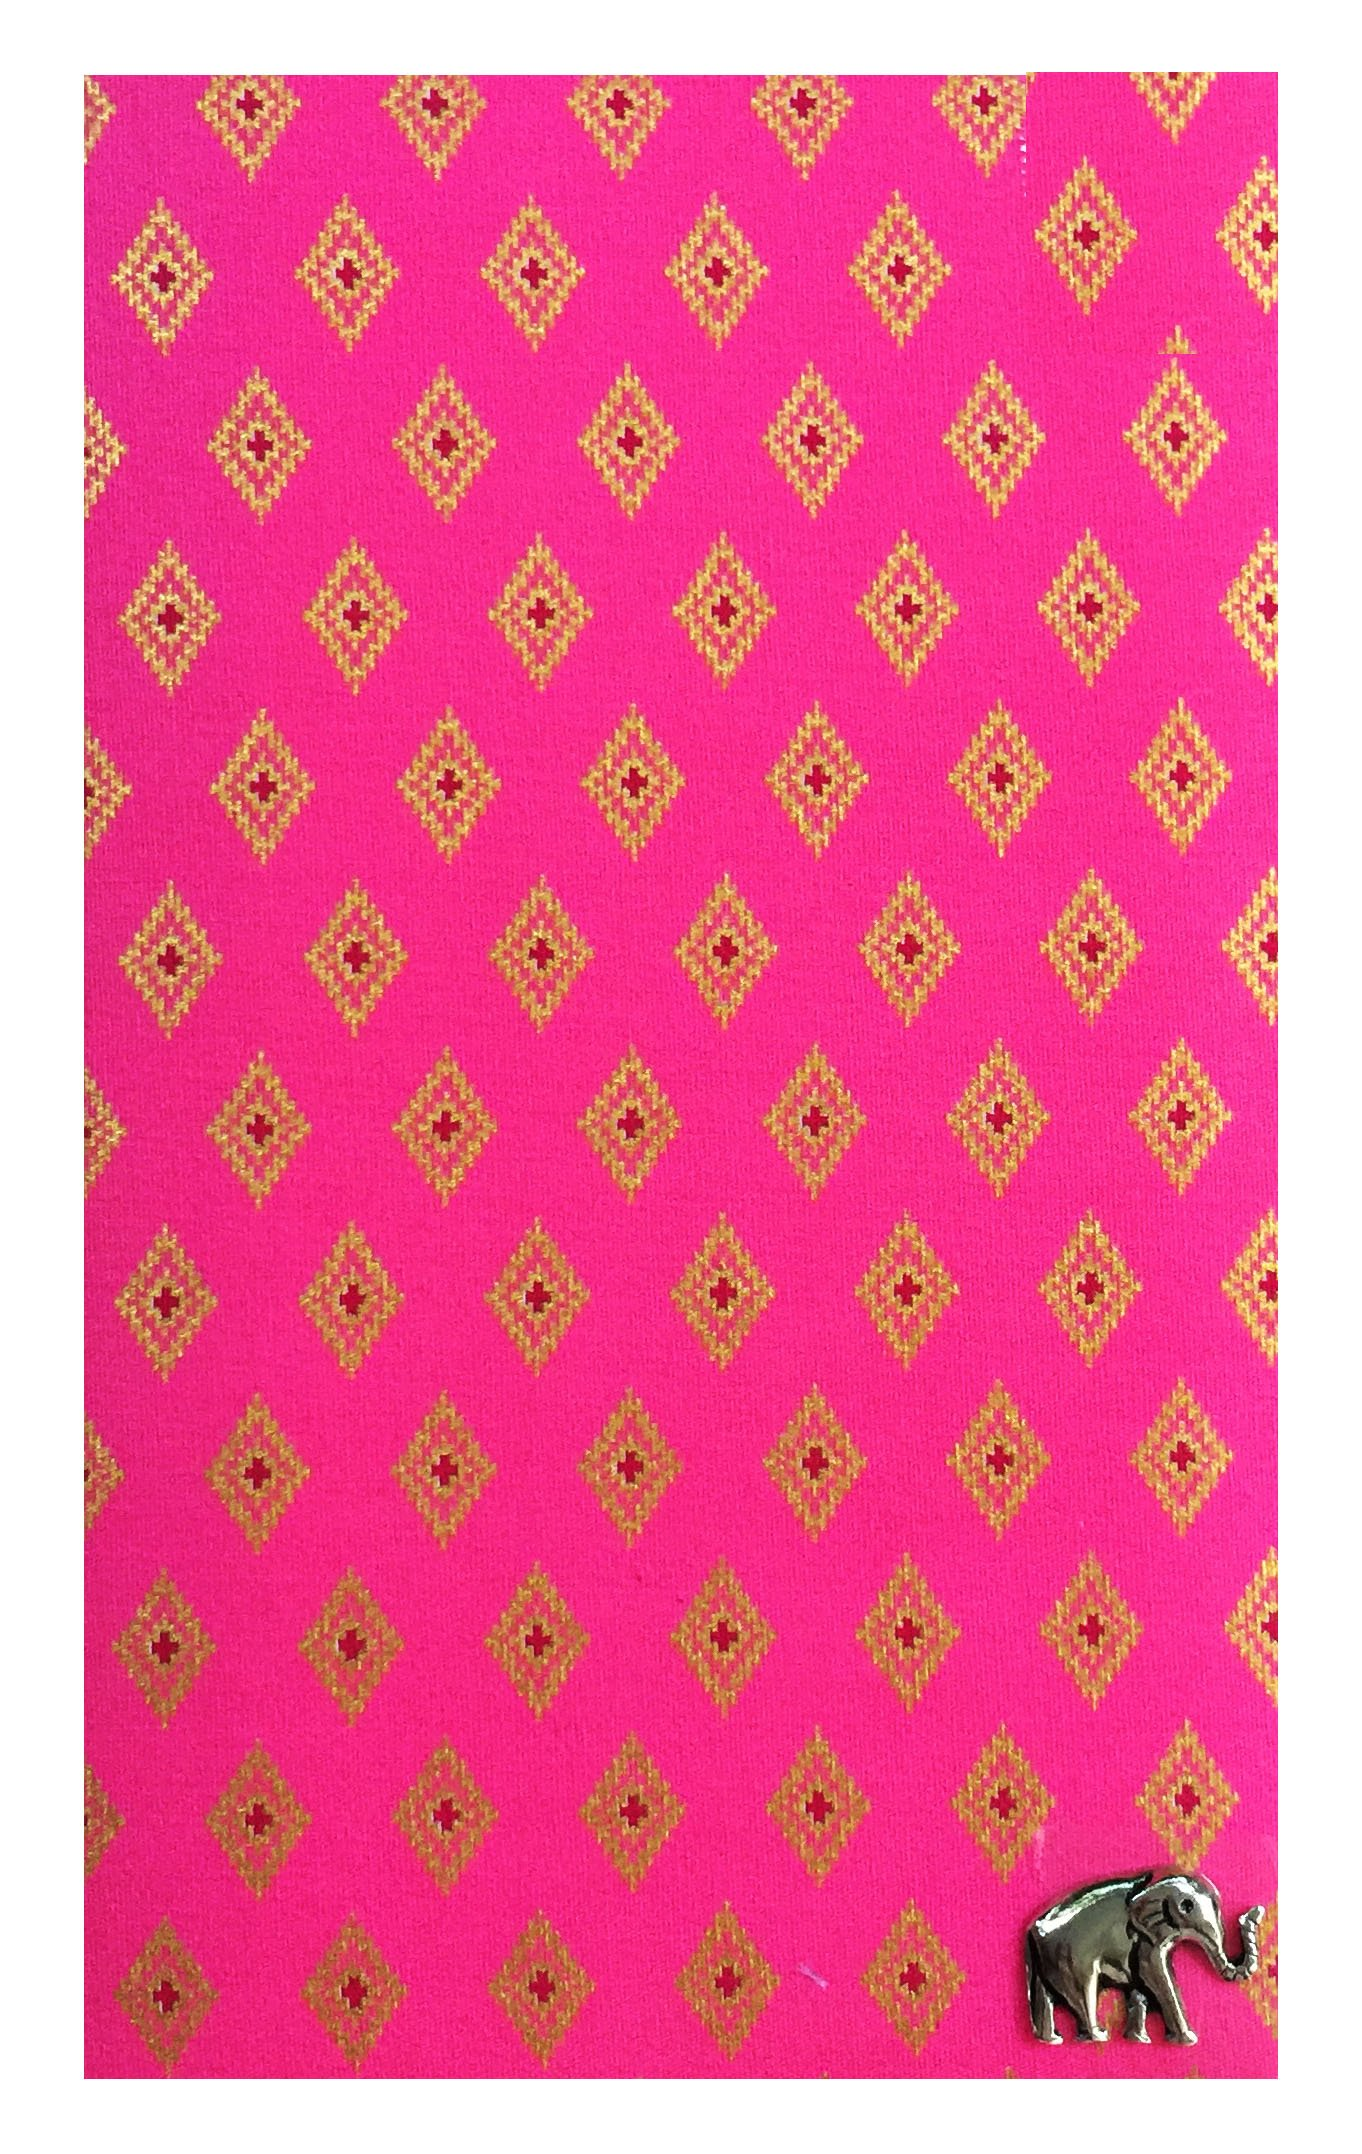 Pink & Gold Thai Pattern Guest Check Presenter for Restaurant, Check Book Holder & Cover, Waitstaff Organizer, Server Book for Waitress with Money Pocket, Check Pad Holder U by Kathy